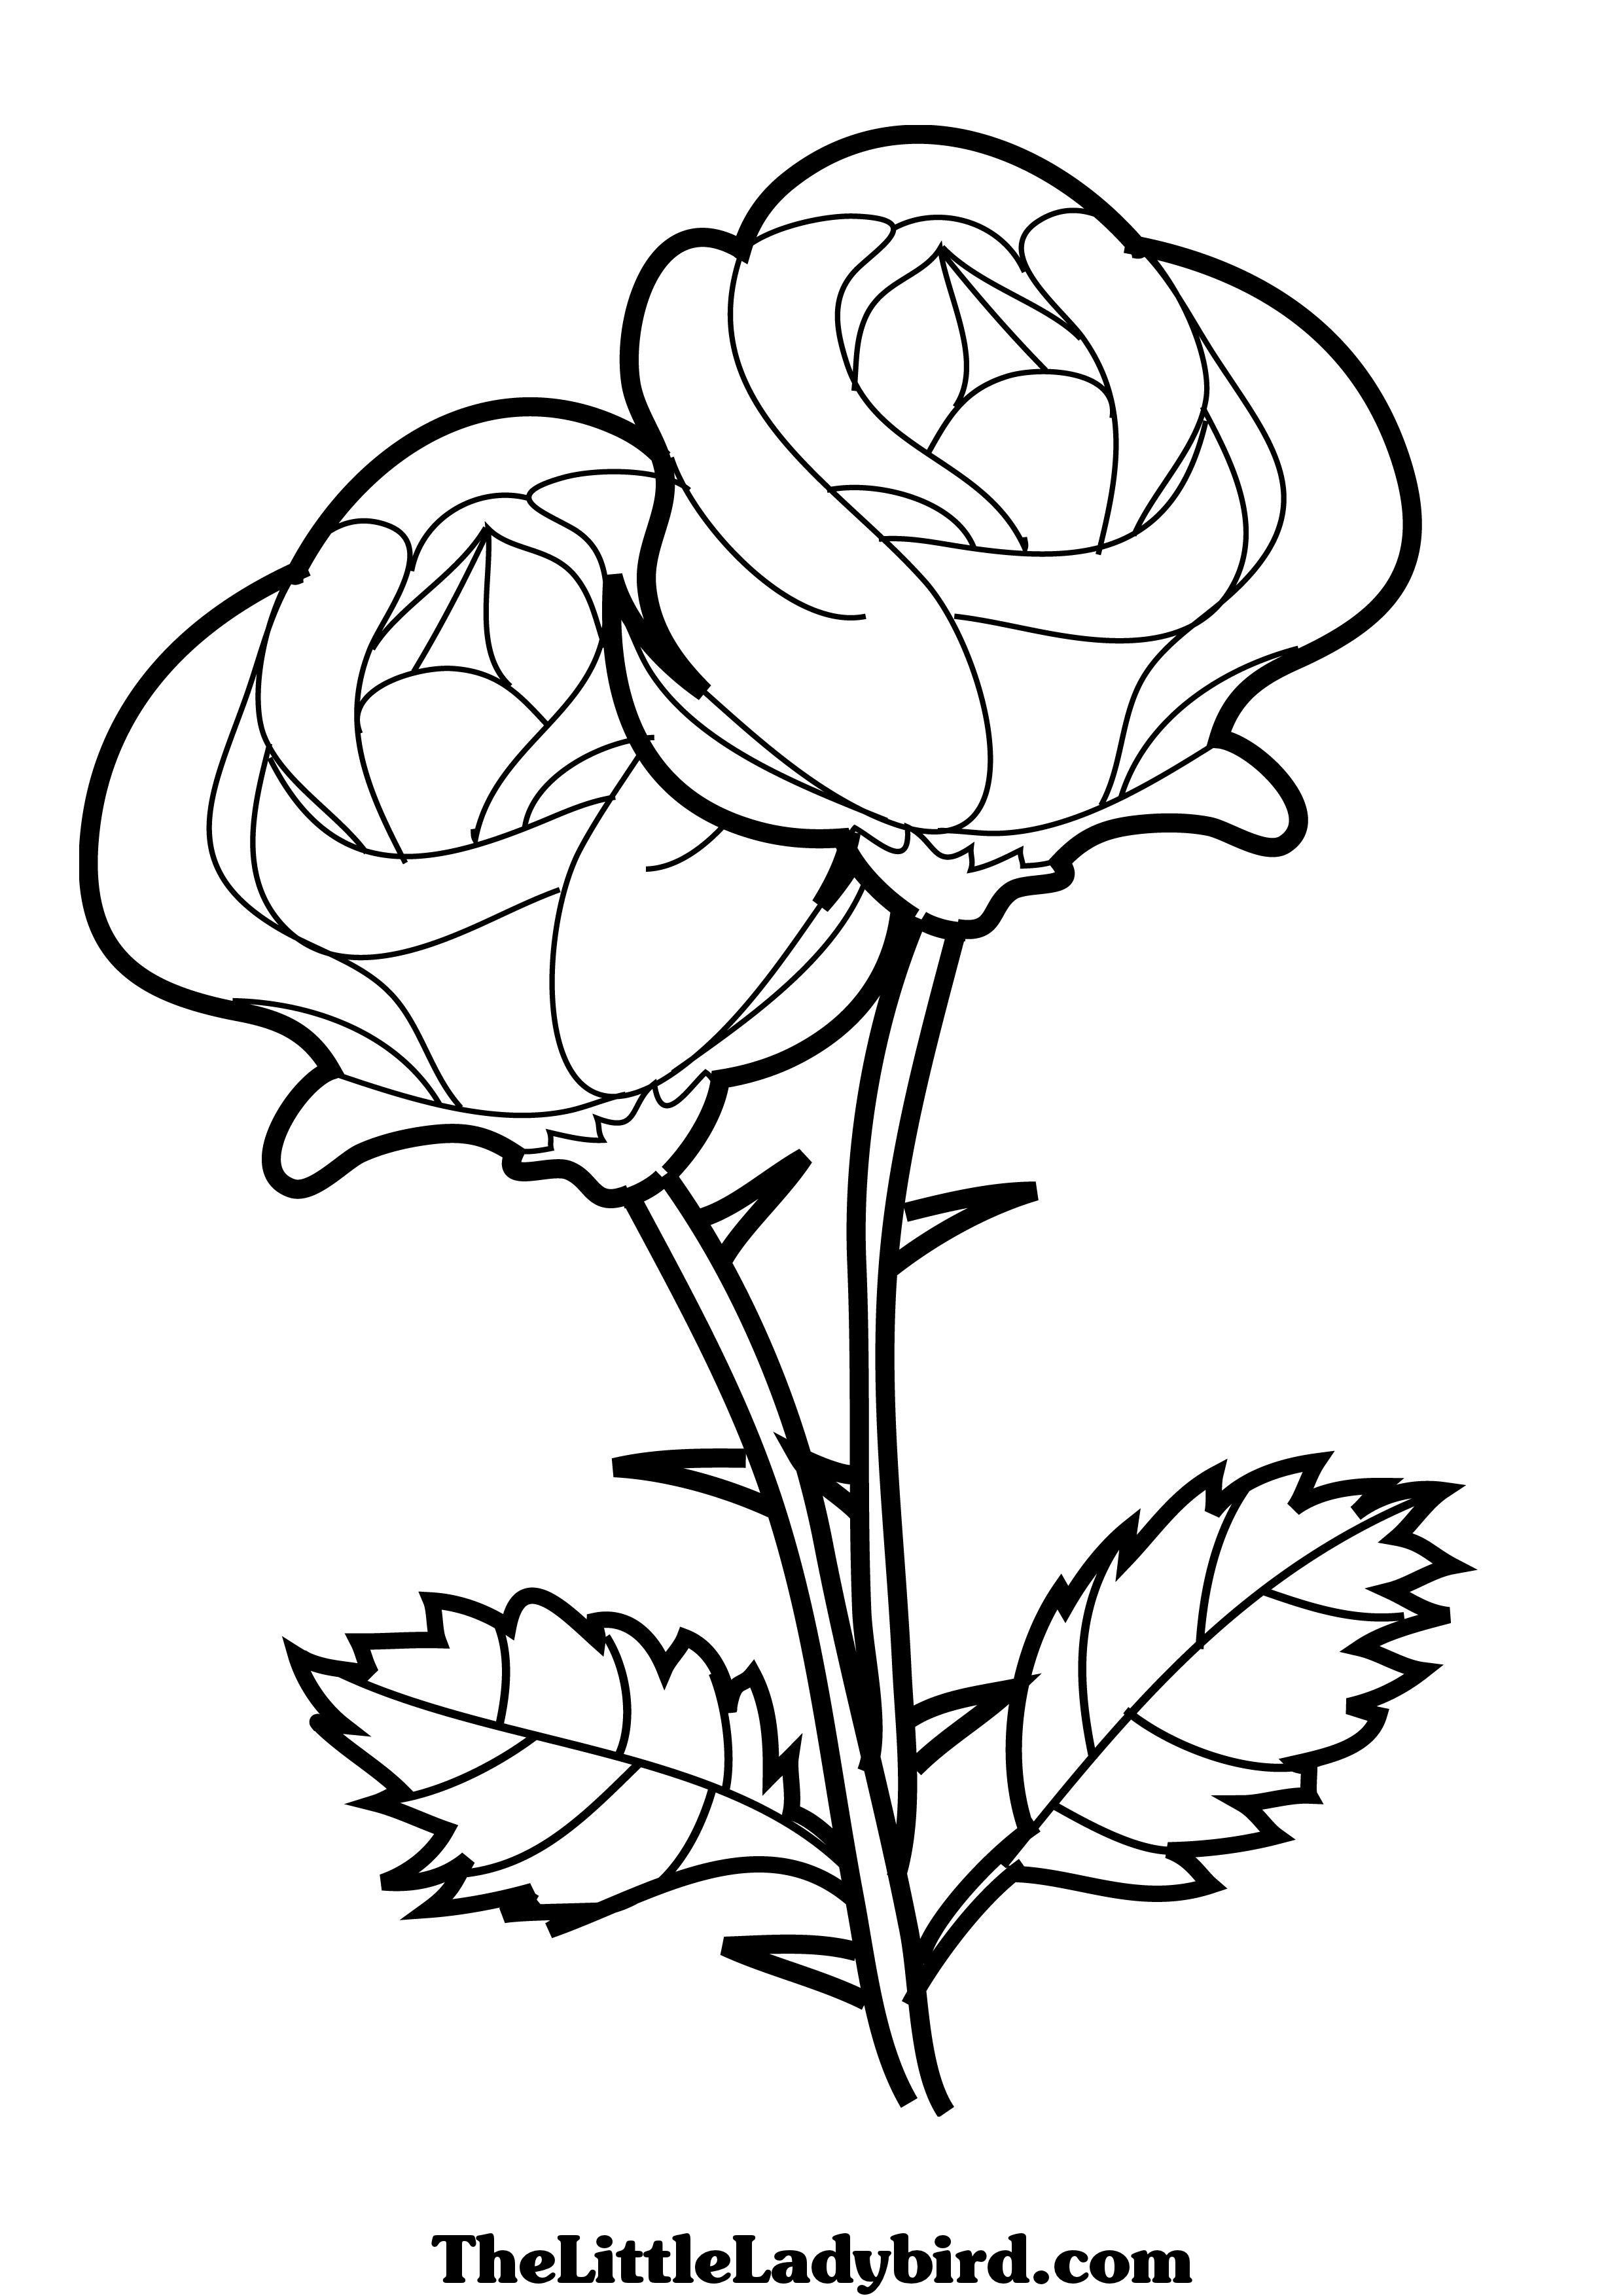 2480x3508 Three Flowers Coloring Pages For Kids Luxury Flowers Drawing Pages